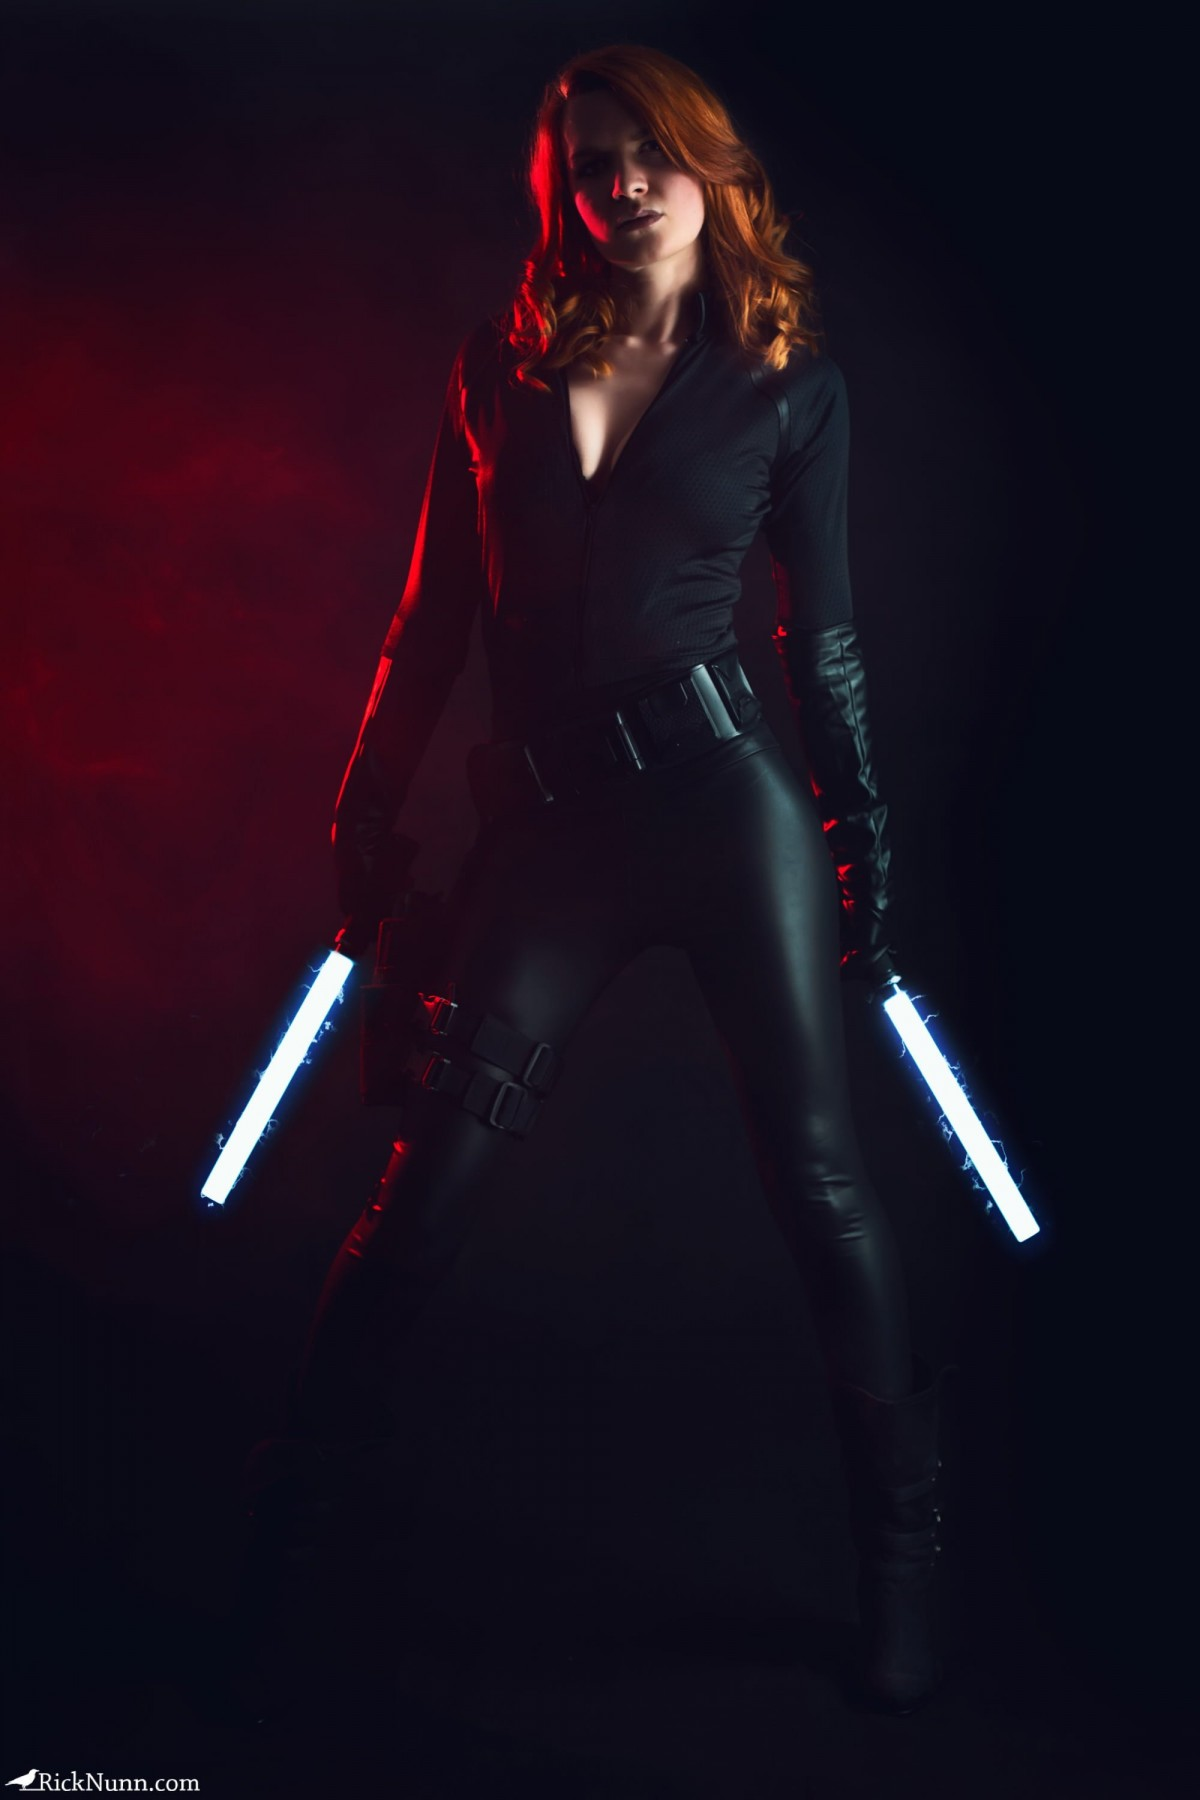 Black Widow - Strobist Portrait of Spadge as Black Widow with Glowing Batons Photographed by Rick Nunn